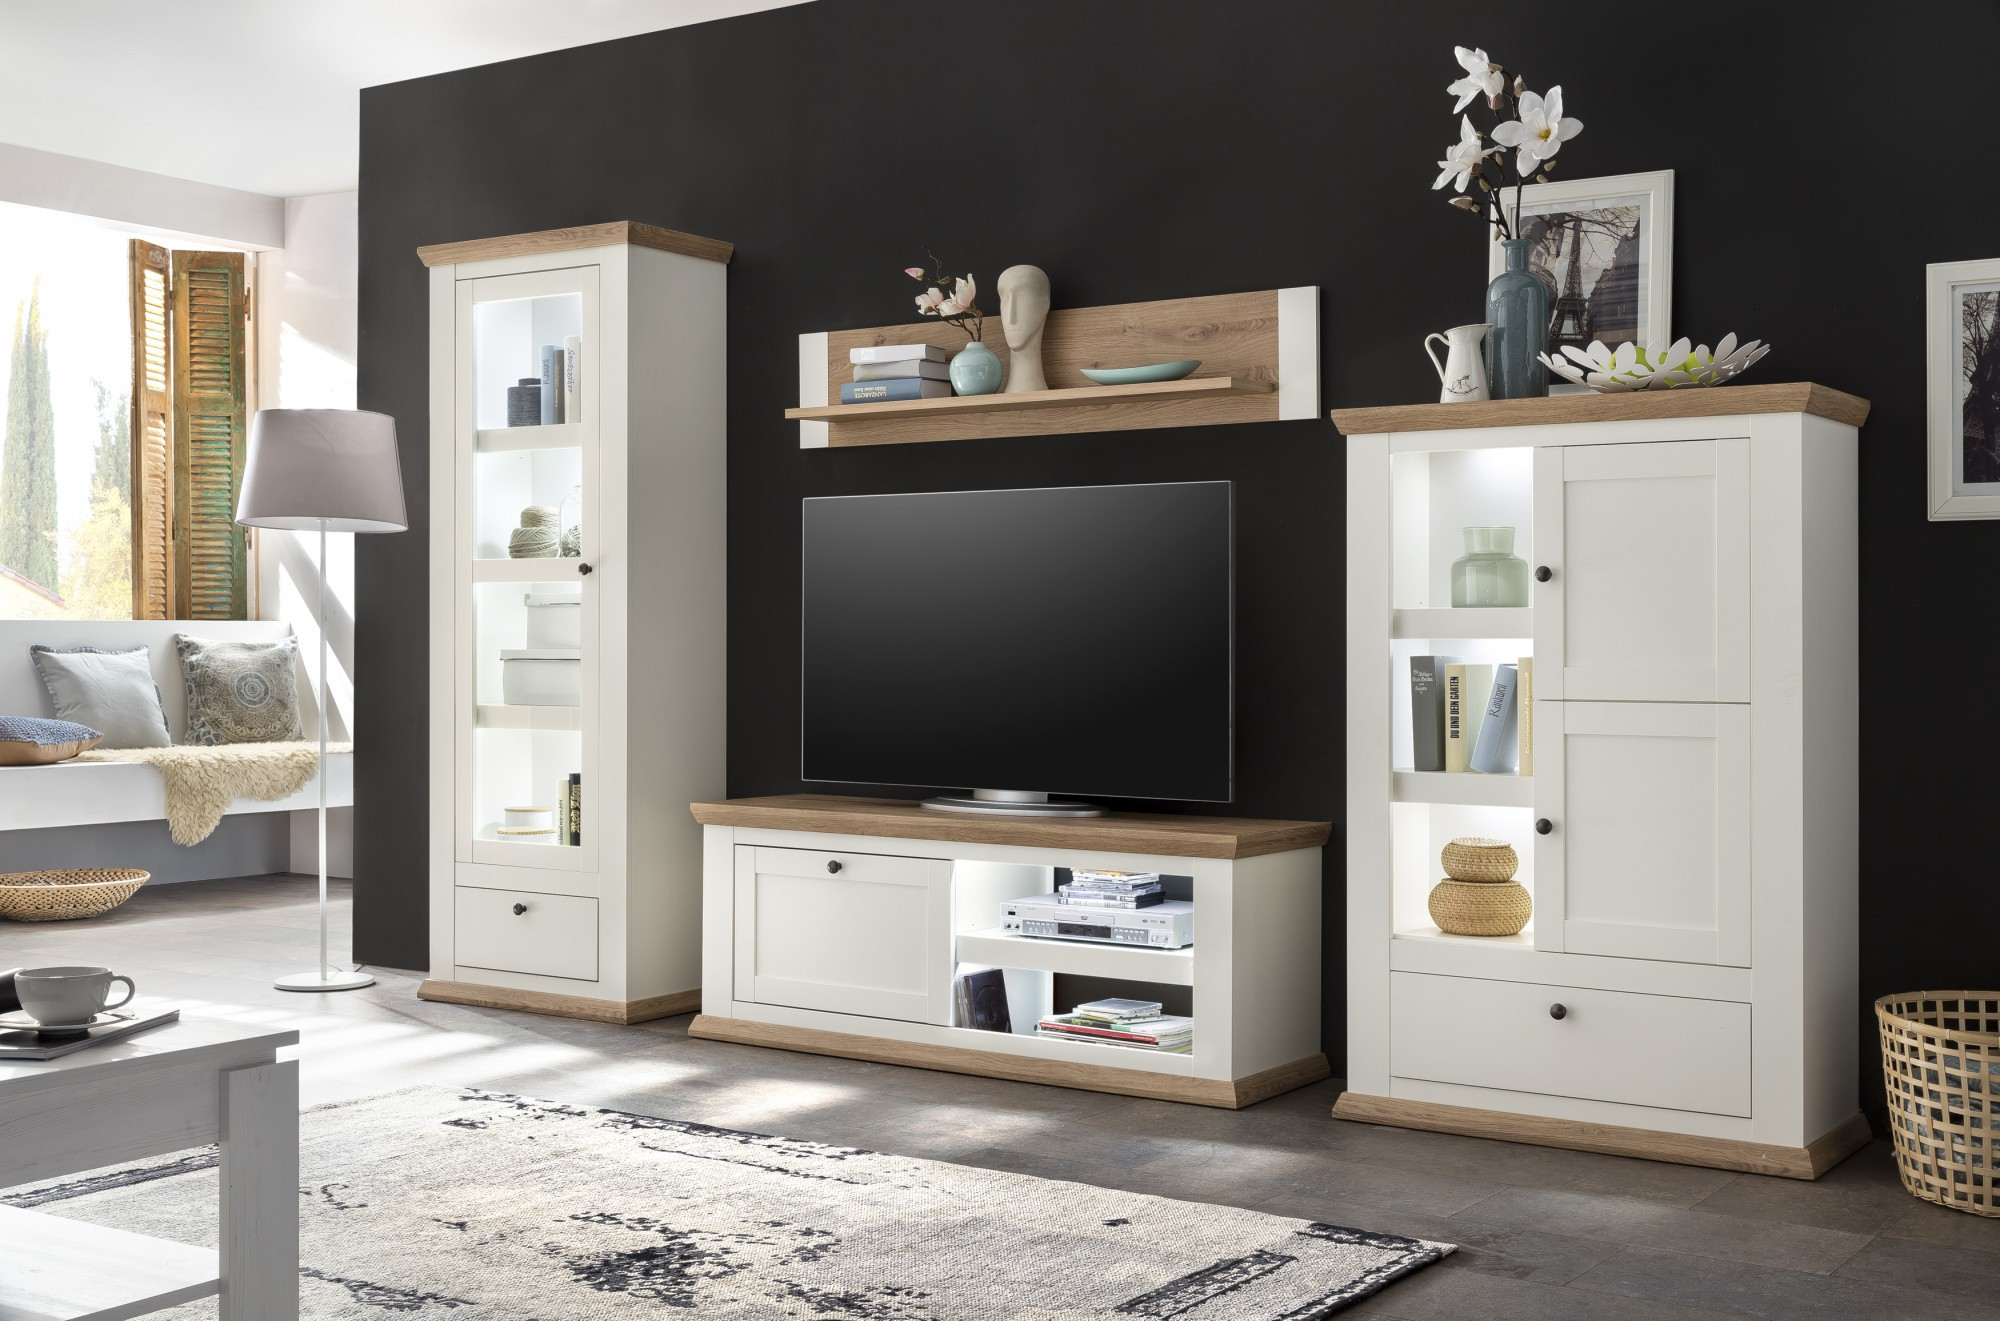 vitrine boston c massivholz weiss. Black Bedroom Furniture Sets. Home Design Ideas